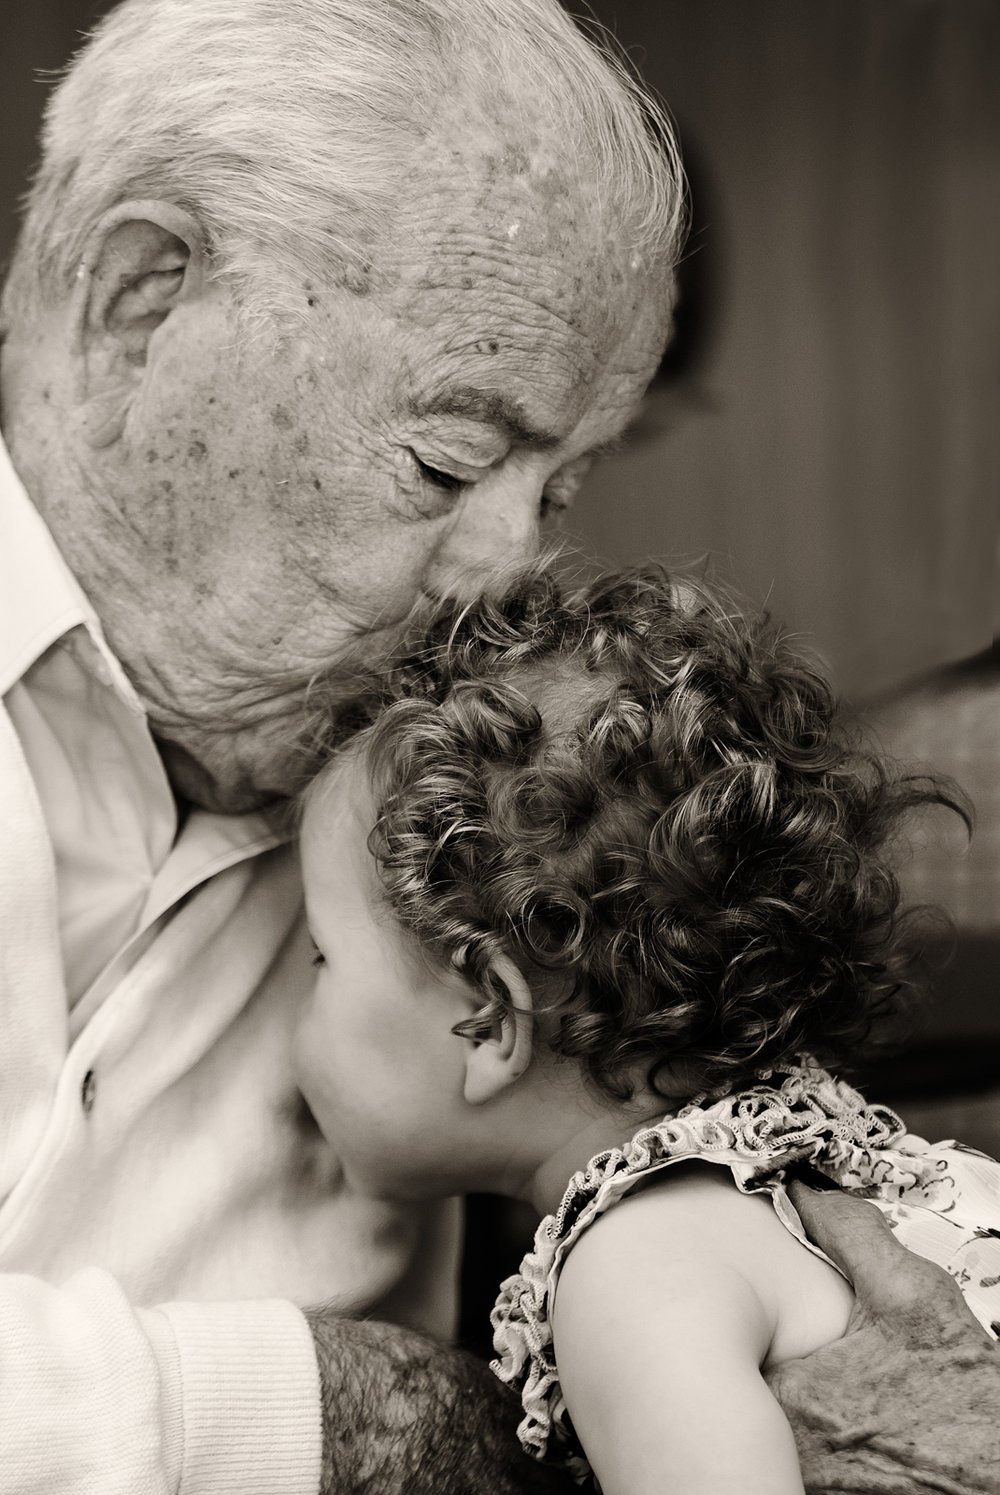 greatgrandpa gets a kiss.jpg